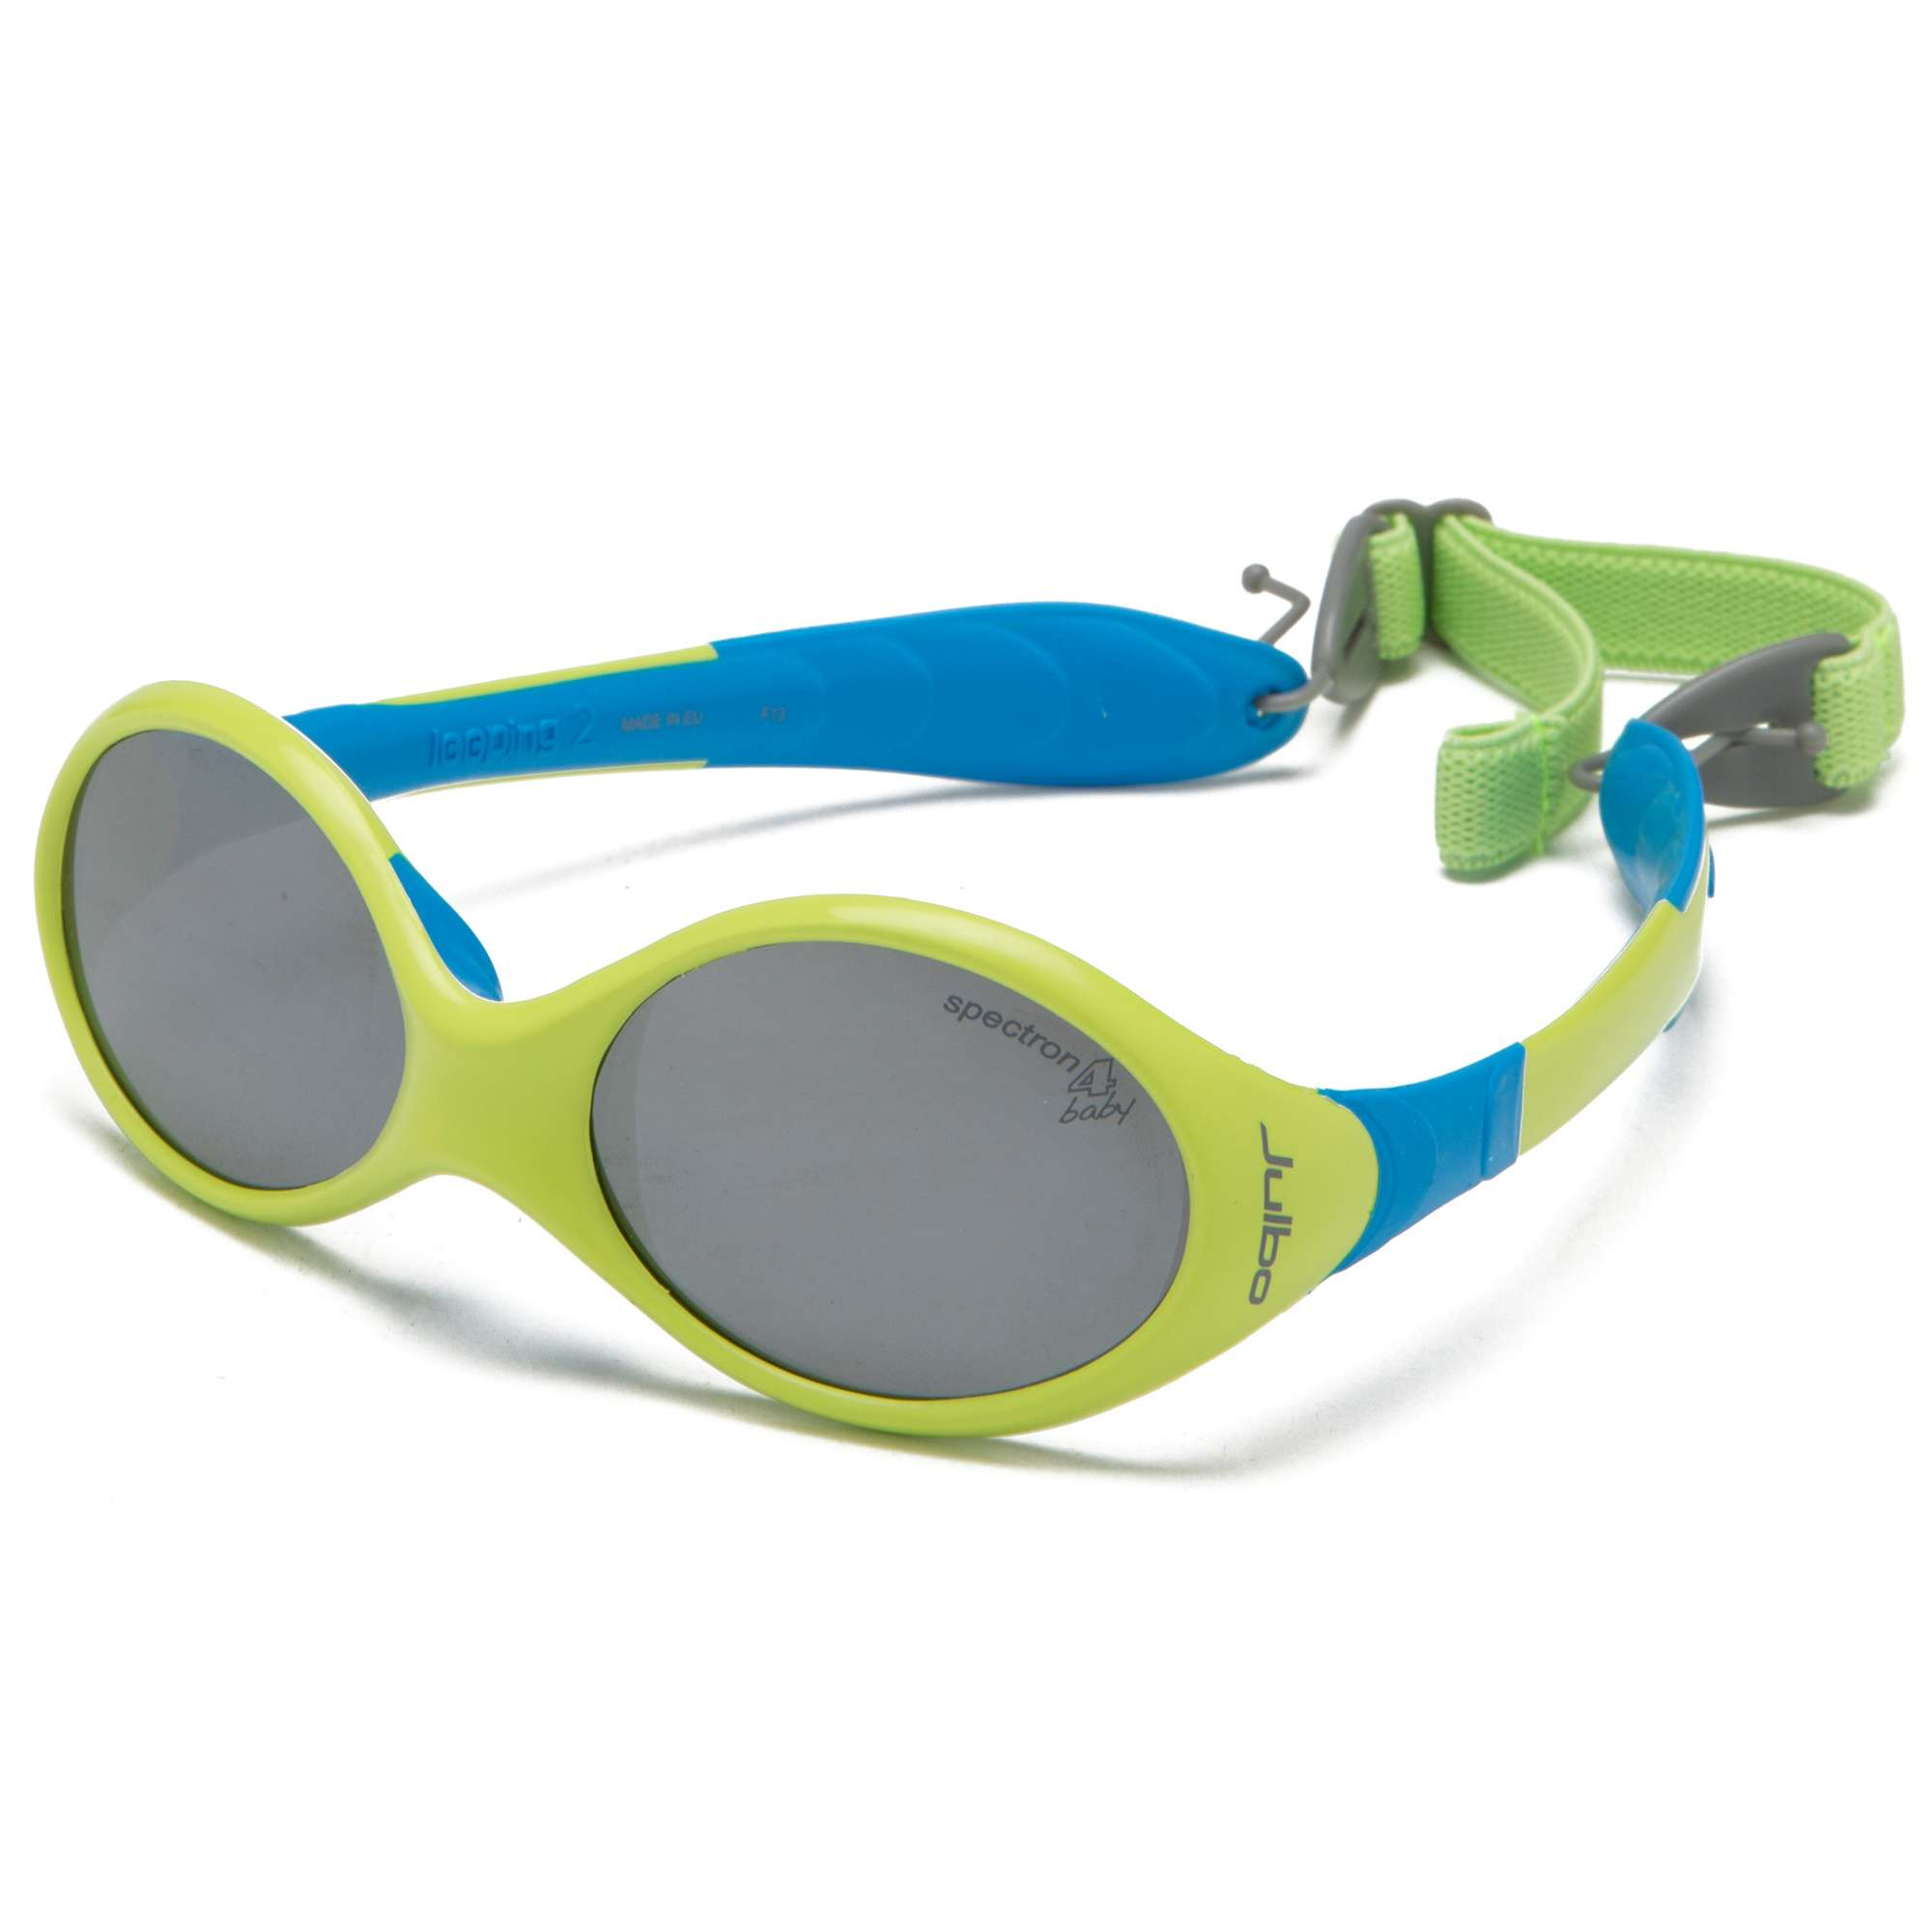 JULBO Kid's Looping 2 Sunglasses (ages 12-24 months)